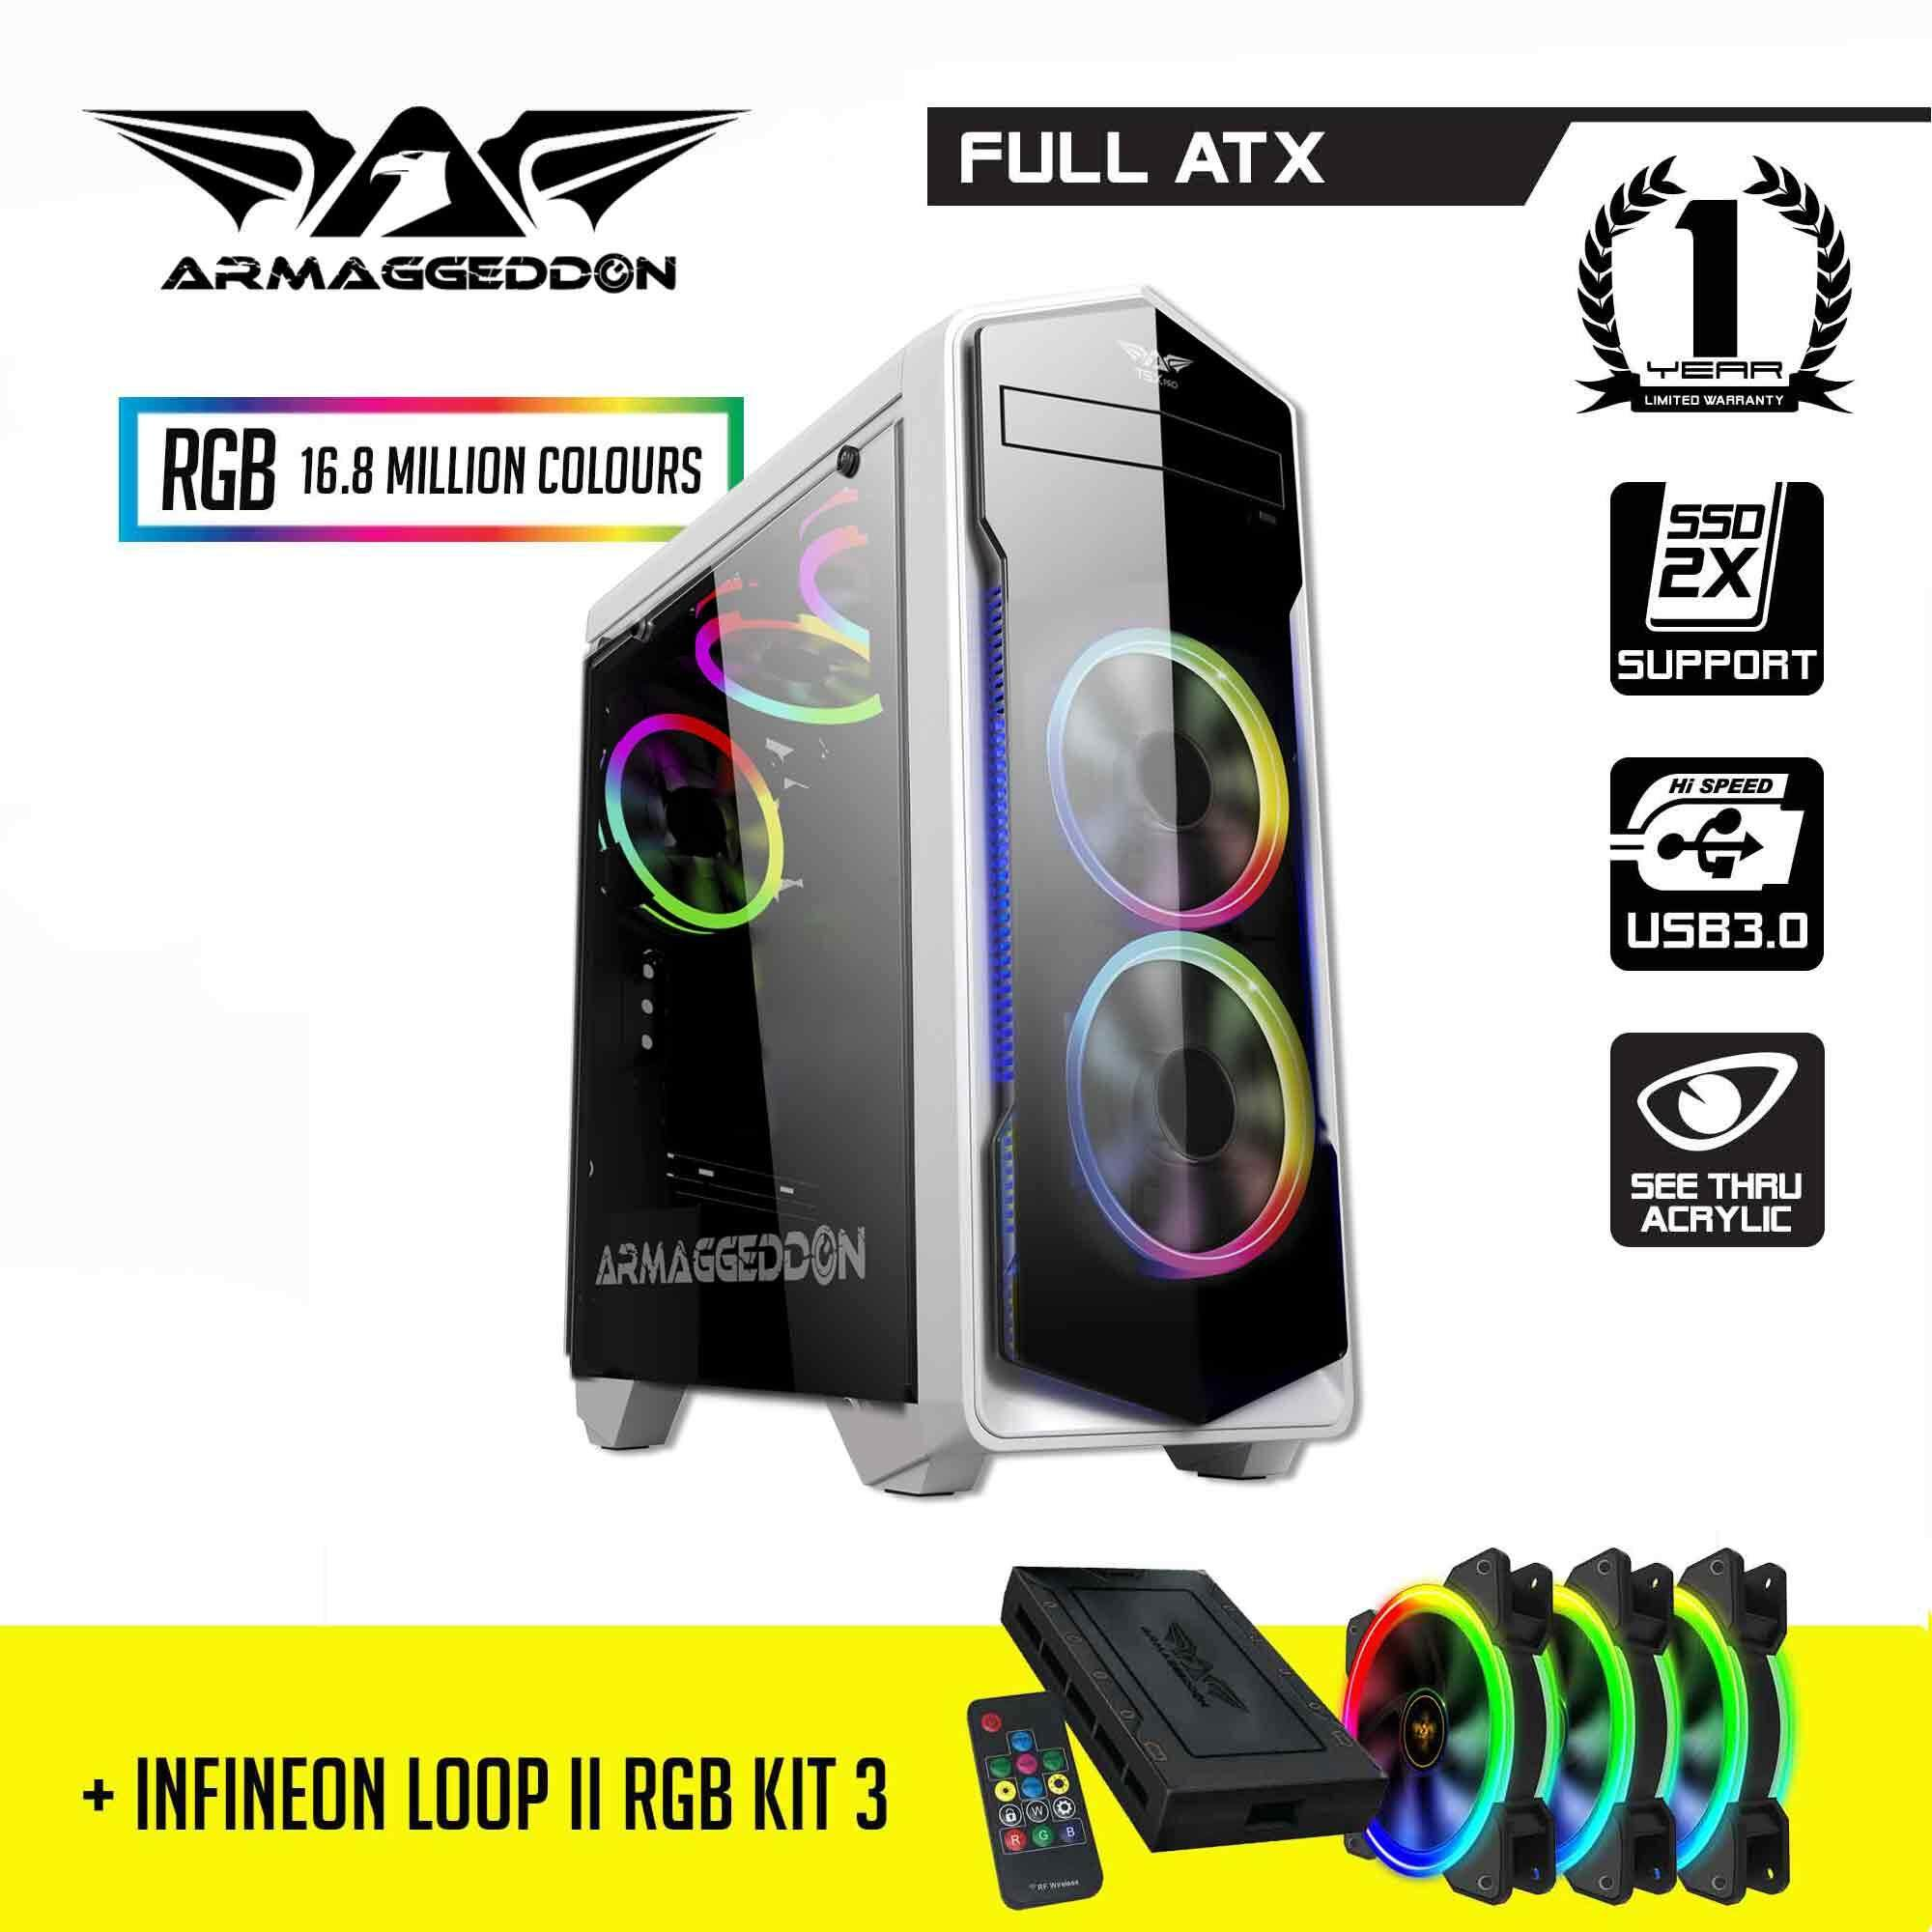 BUNDLE: Armaggeddon T5X Pro Full ATX Gaming PC Case and Infineon Loop II RGB Kit 3 Malaysia